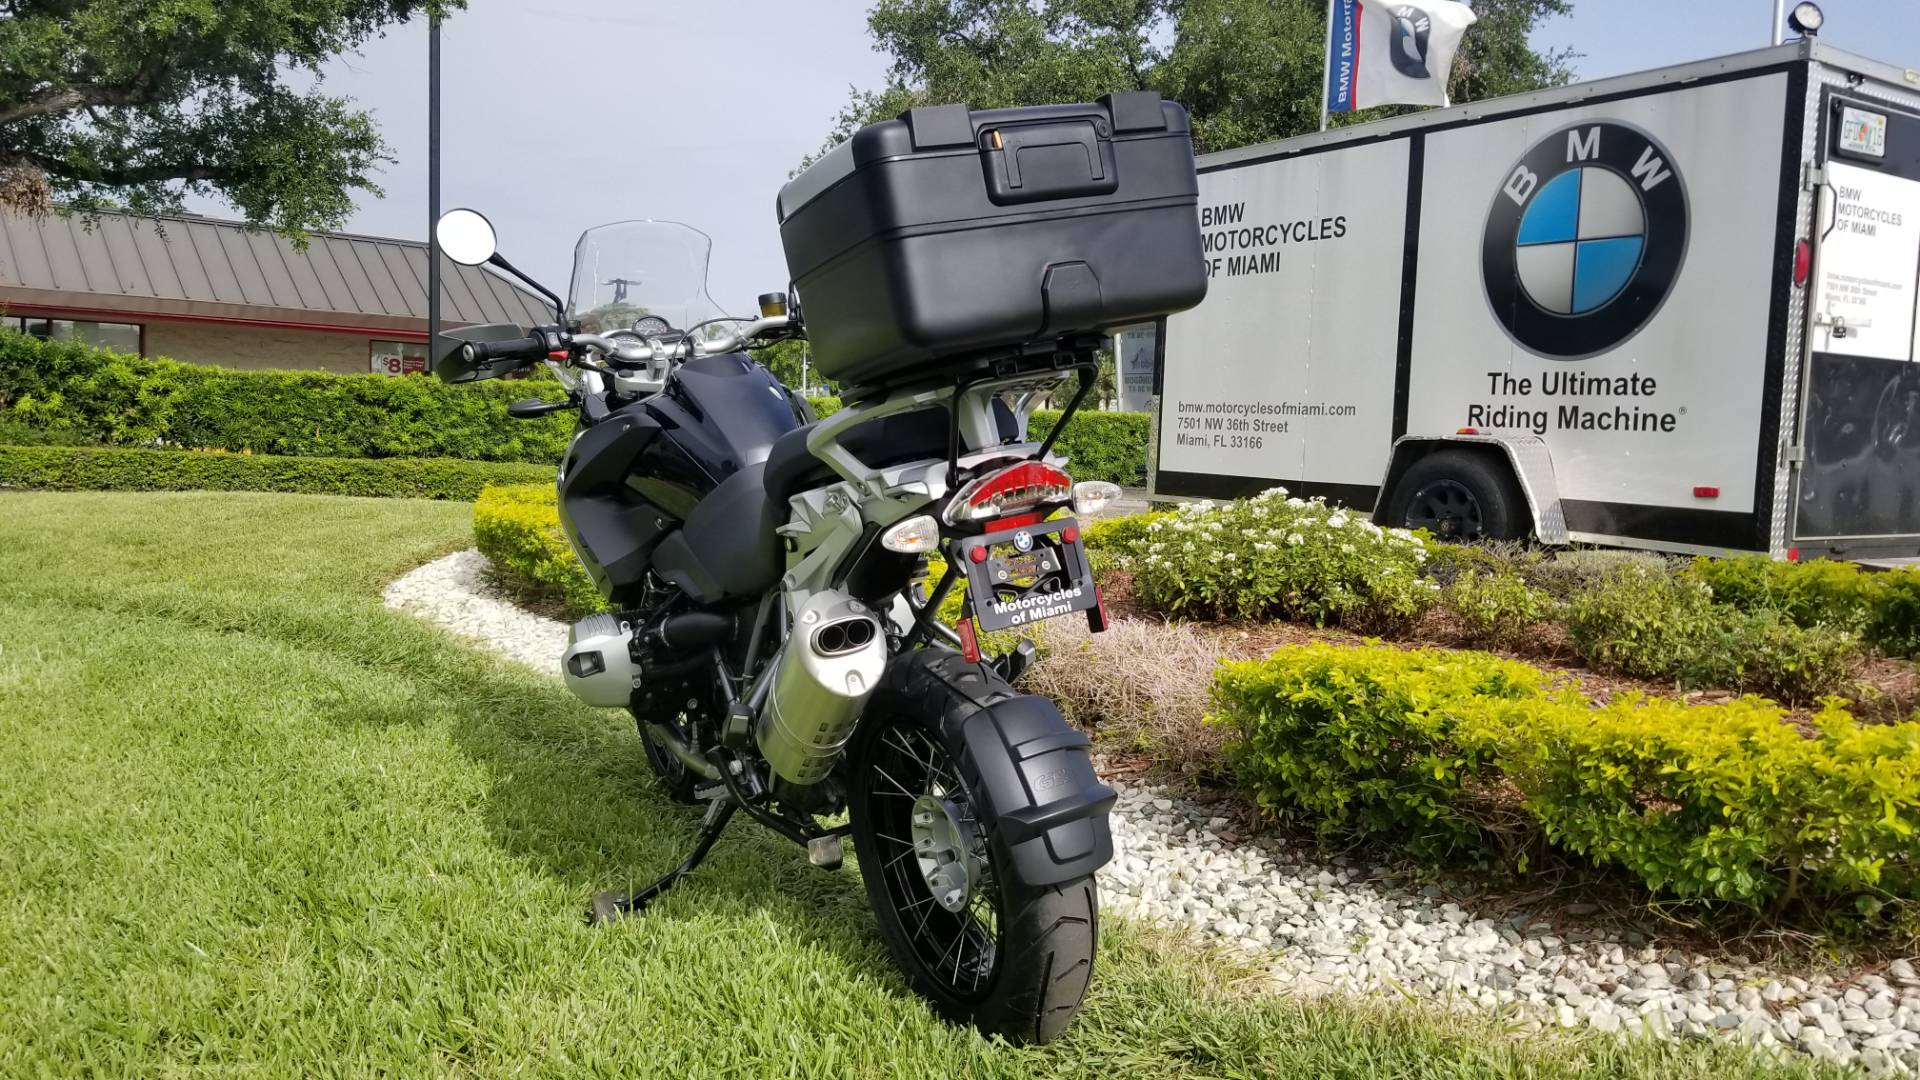 Used 2011 BMW R 1200 GS For Sale, Pre Owned BMW R 1200GS For Sale, Pre-Owned BMW Motorcycle R1200GS, BMW Motorcycle, GS, BMW - Photo 10